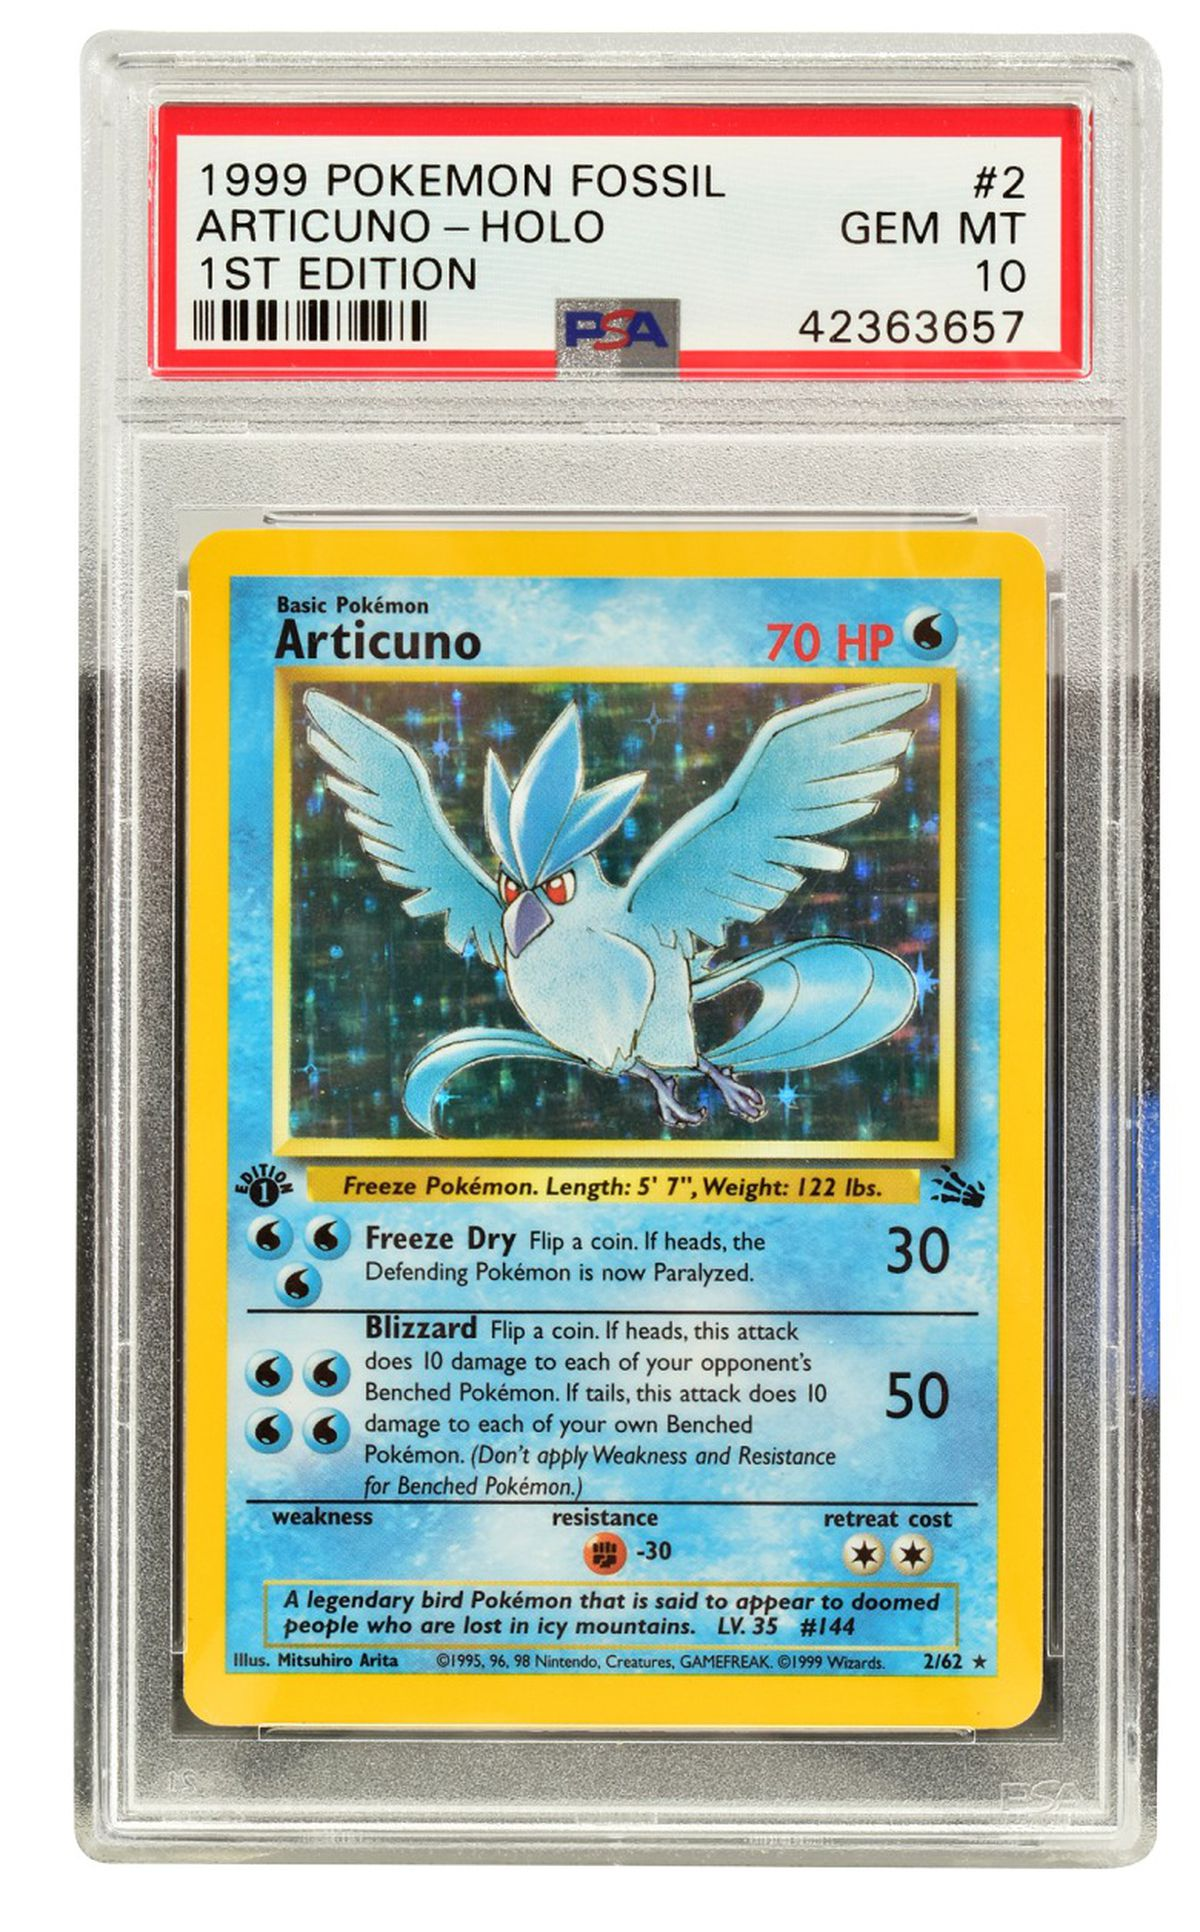 A 1st edition Pokémon Fossil Articuno Holo, PSA Gem Mint 10, estimated to sell for £1,800-£2,000.